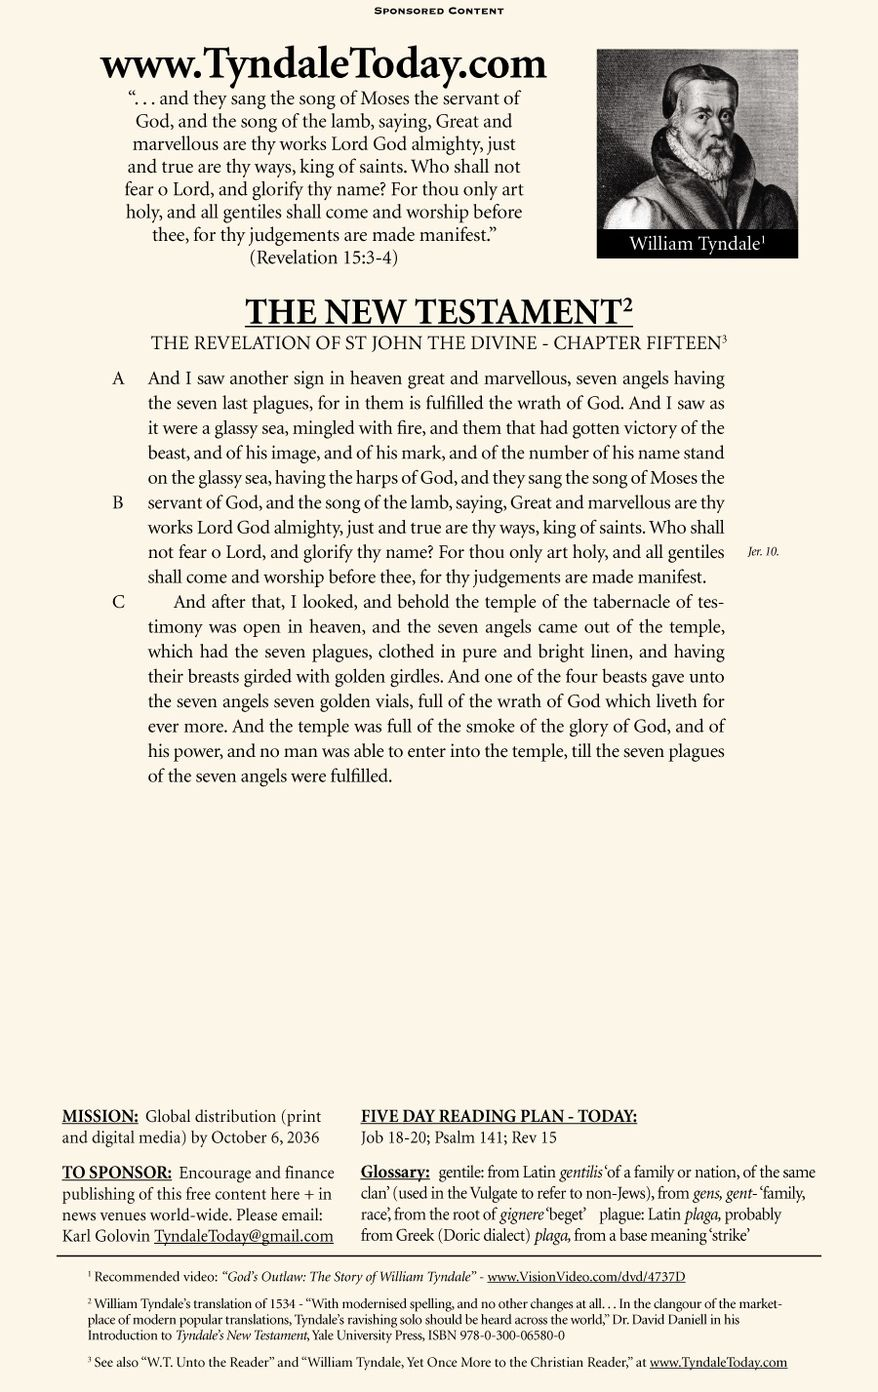 A daily reading of William Tyndale's 1534 translation of The New Testament from Tyndale Today. (Sponsored content December 21, 2016 in The Washington Times)